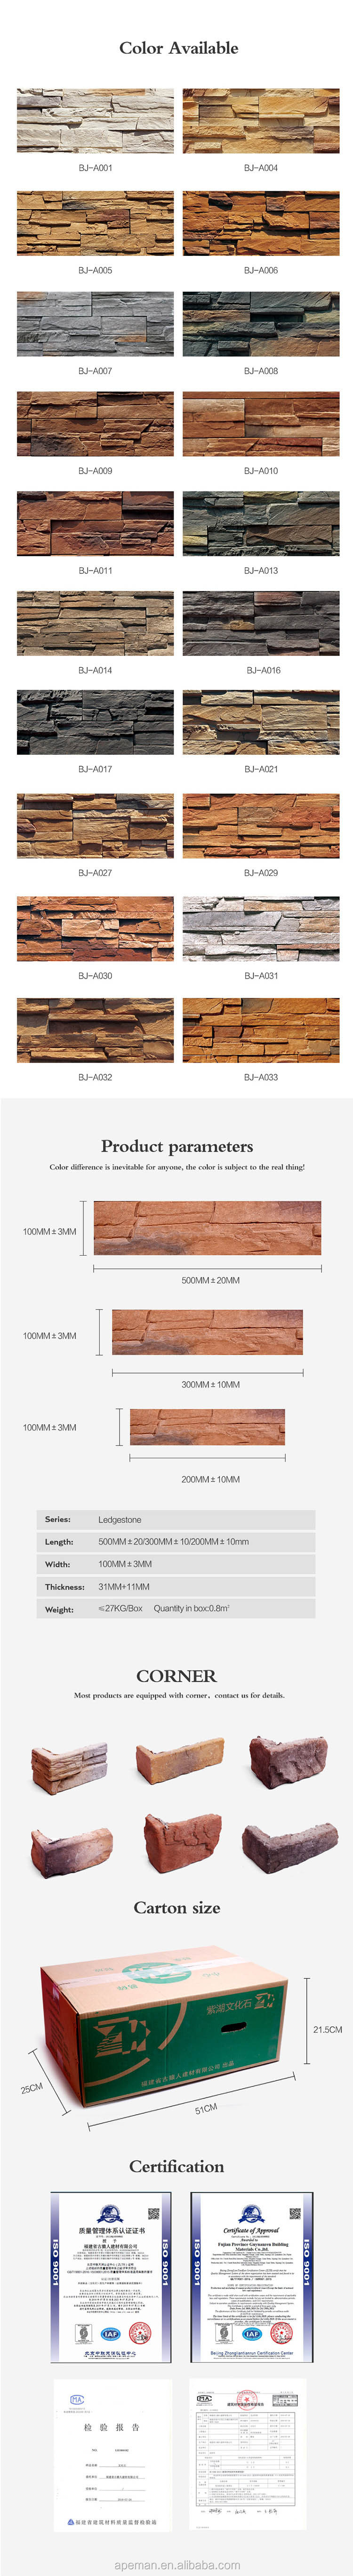 stacked stone wall tiles interior faux panel artificial stone veneer  exterior wall cladding ledge decorative stone fireplace